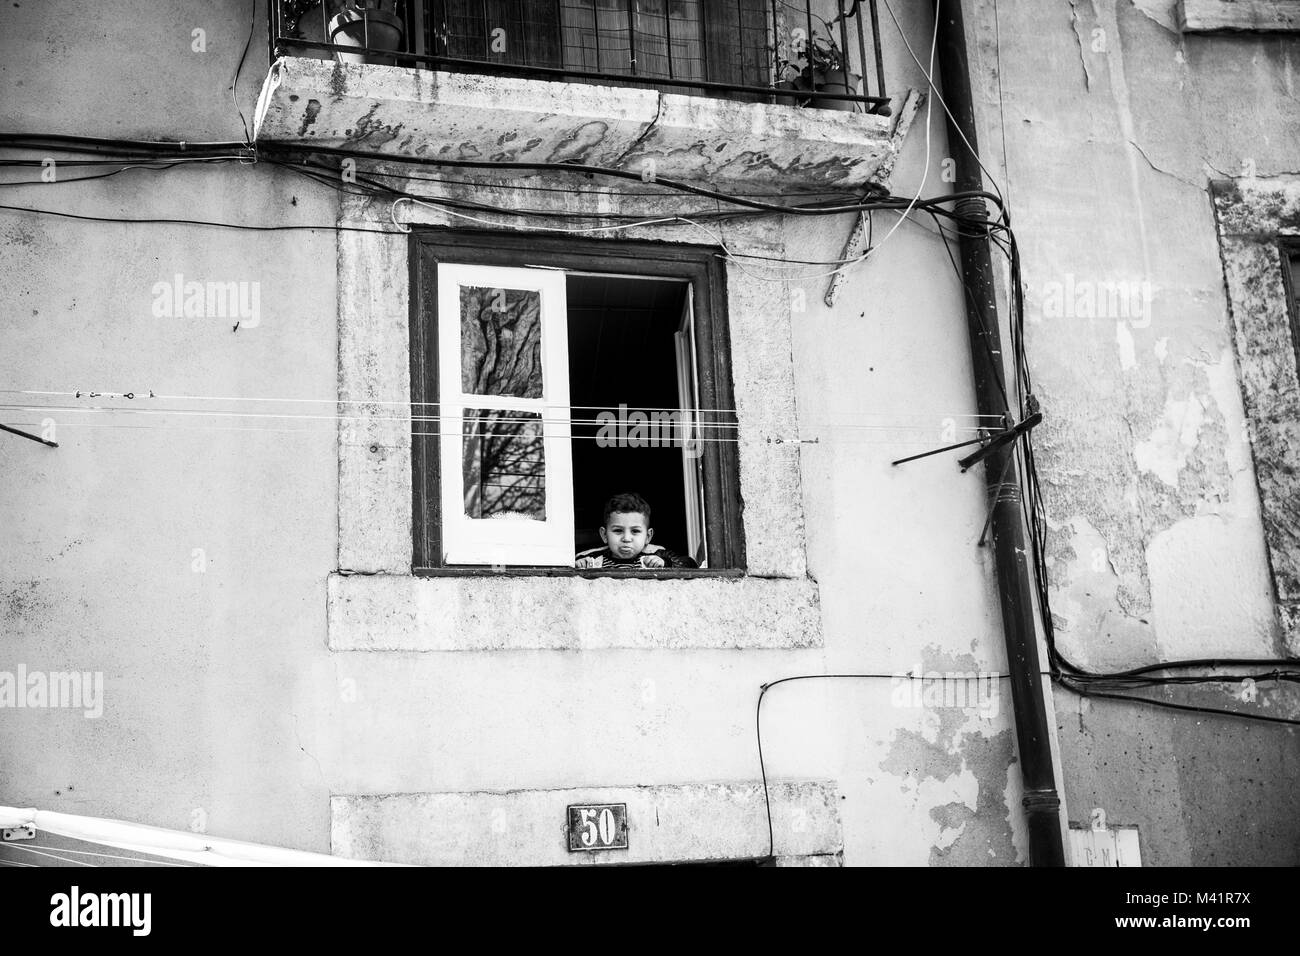 A boy at a window in Lisbon, Portugal. - Stock Image